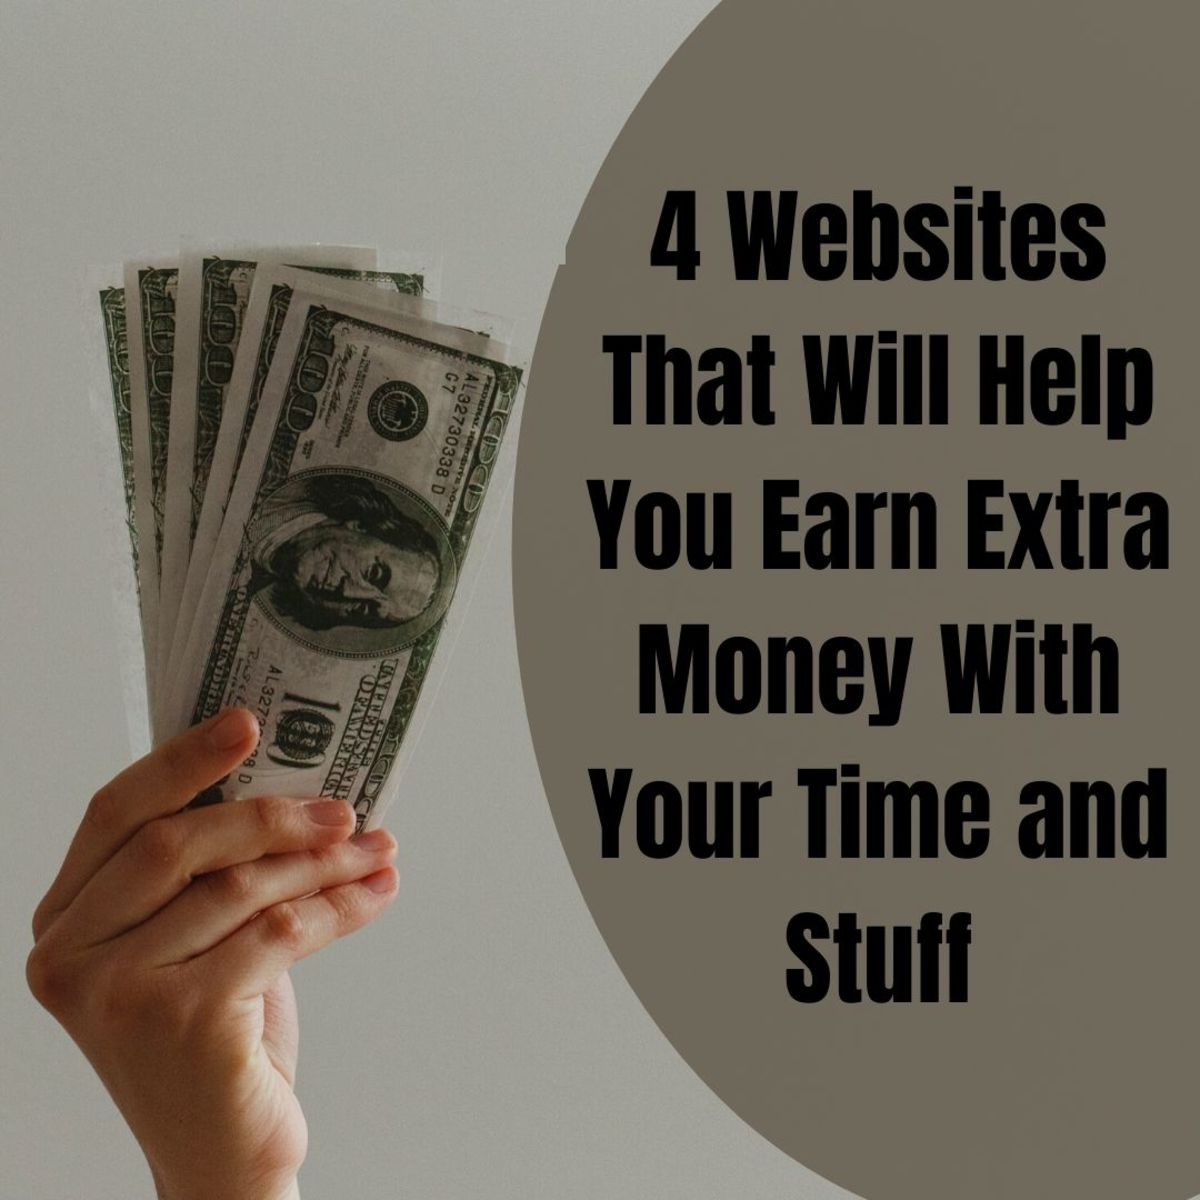 4 Websites That Help You Earn Extra Money